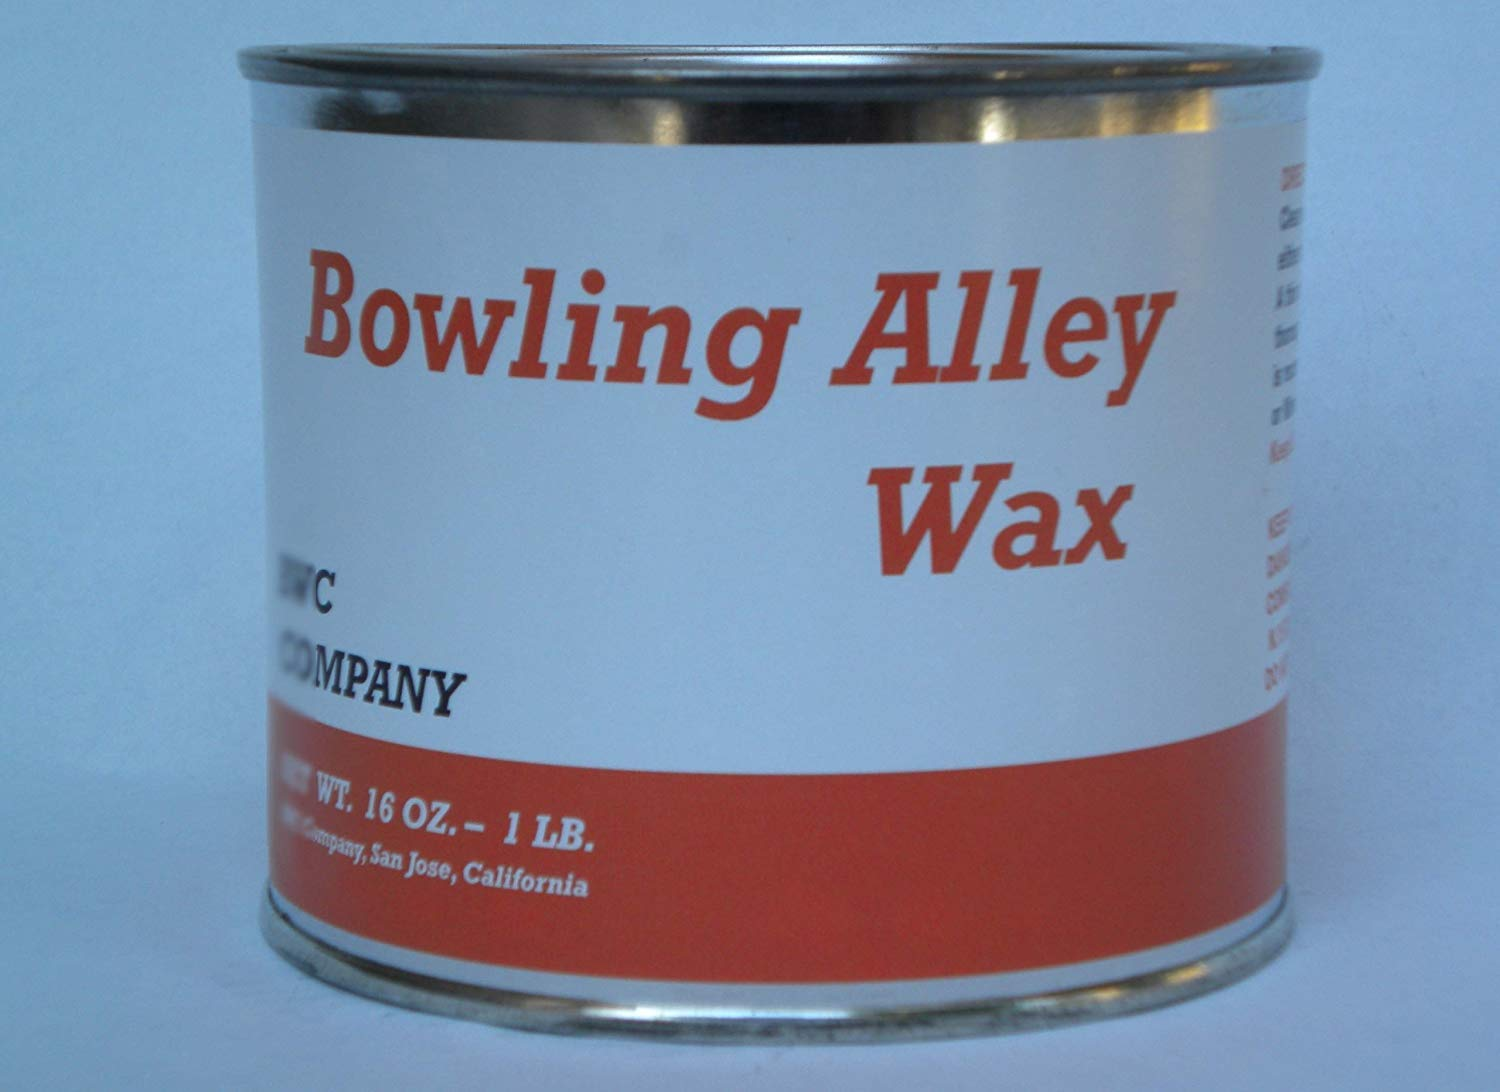 Bowling Alley Wax, Clear Paste Wax, 16 oz. Can by Bowling Alley Wax, White Diamond, Clear Paste Wax (Image #1)